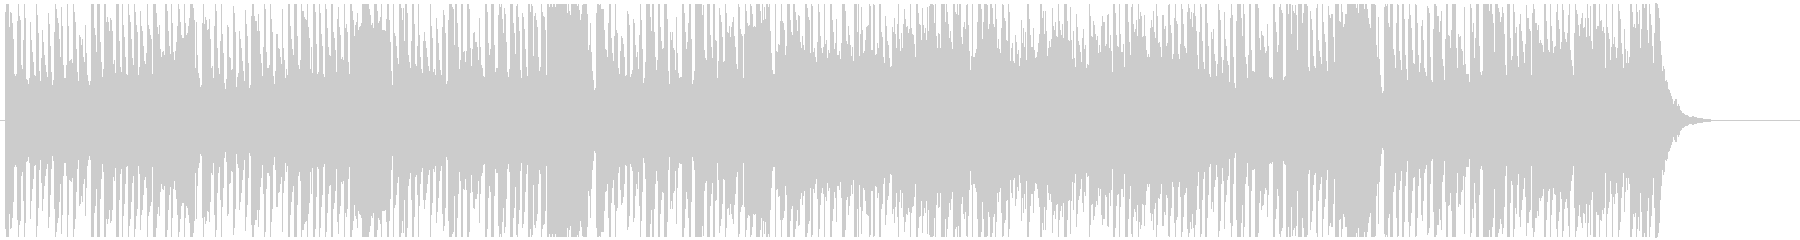 Fantastic and cute BGM's unreproduced waveform